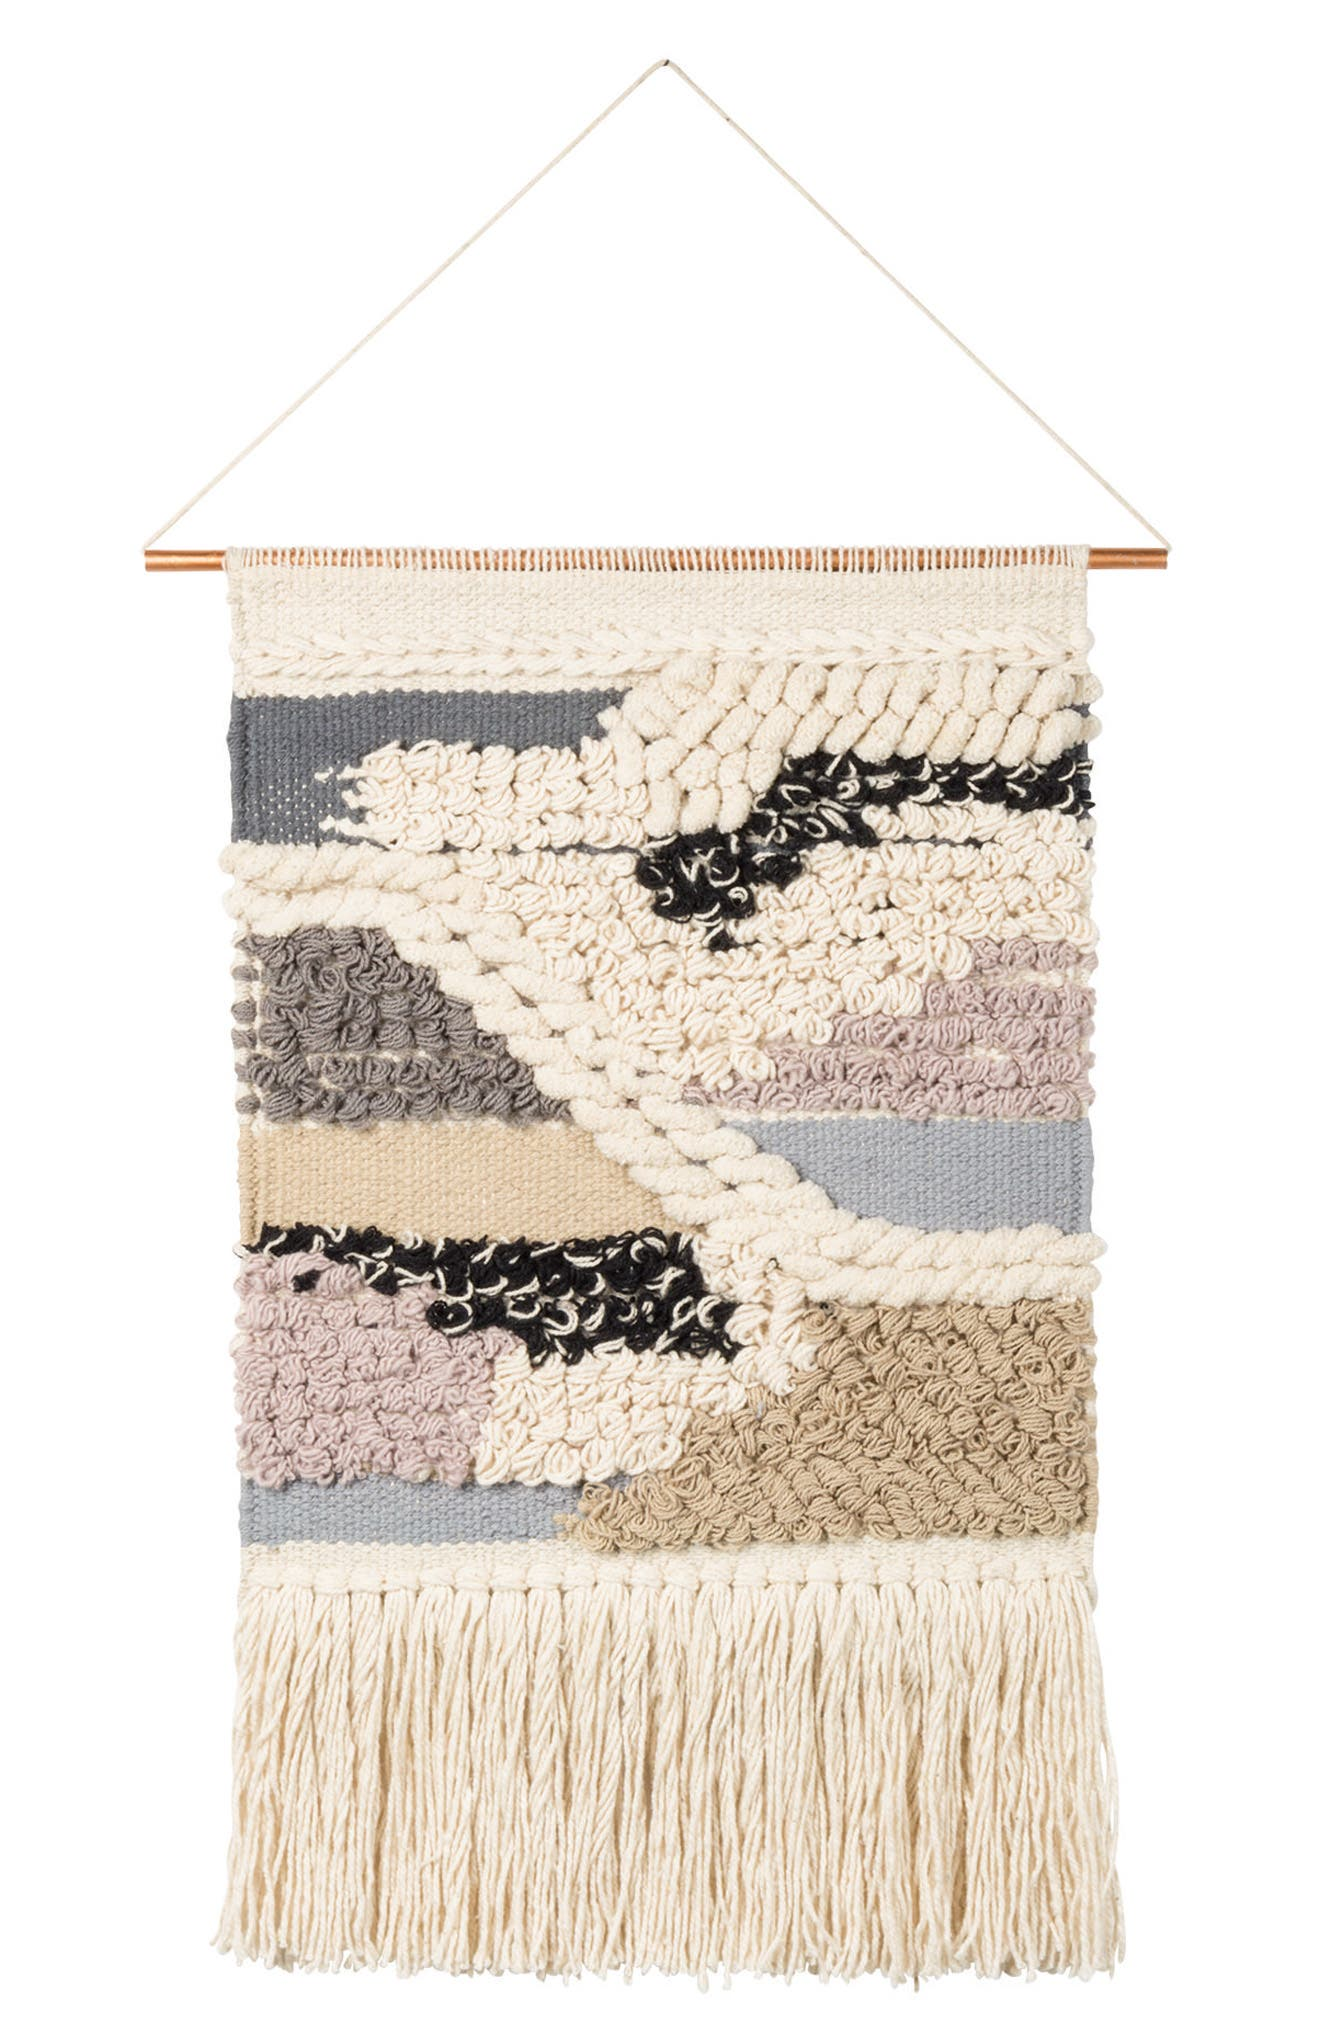 Nomad Woven Wall Hanging,                         Main,                         color, 901